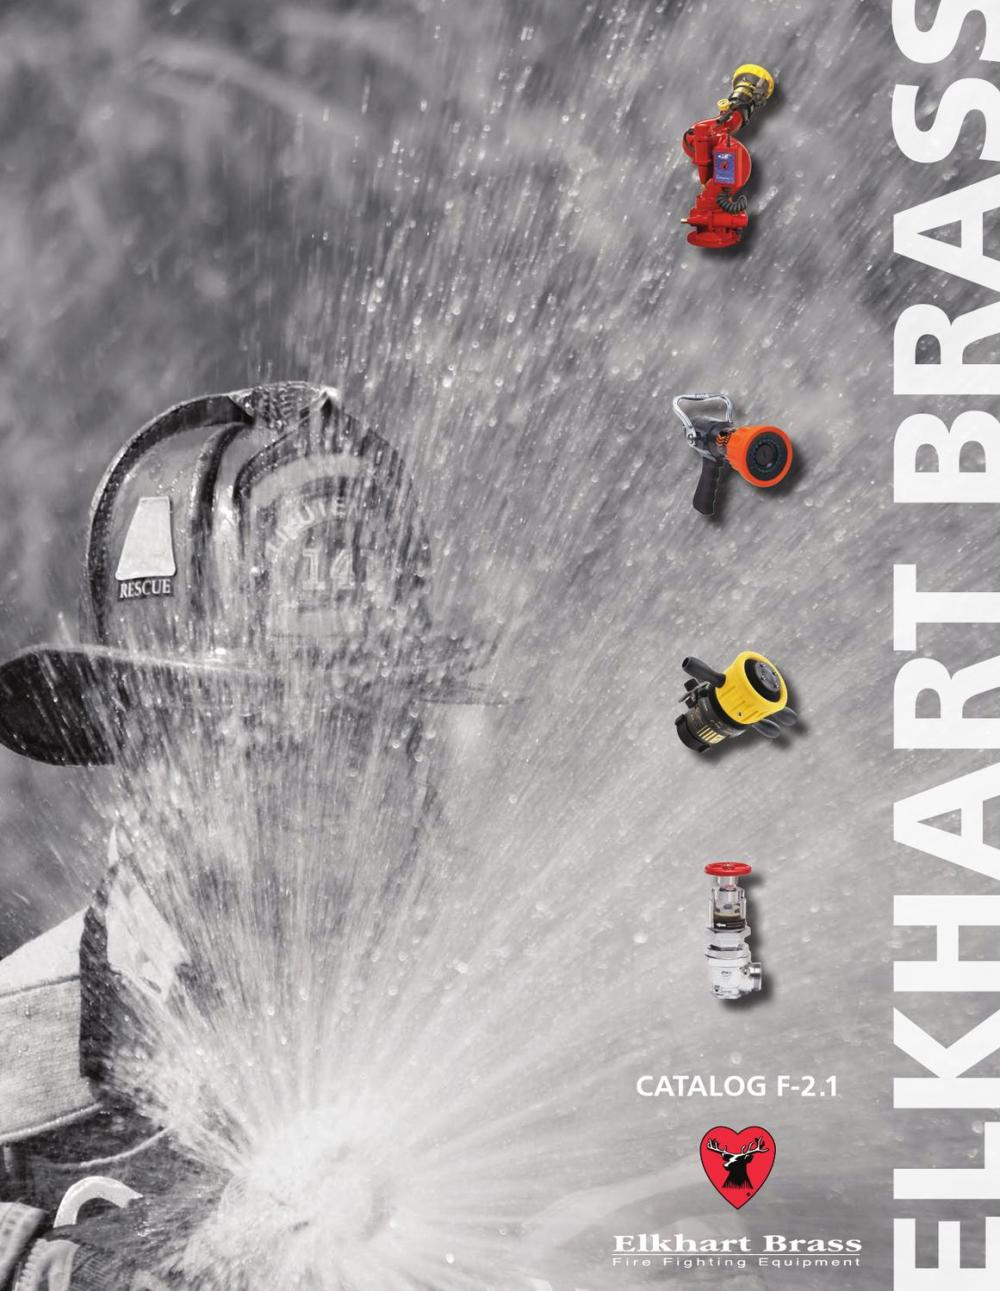 medium resolution of elkhart brass fire fighting equipment full line catalog 2012 by mallory safety supply issuu